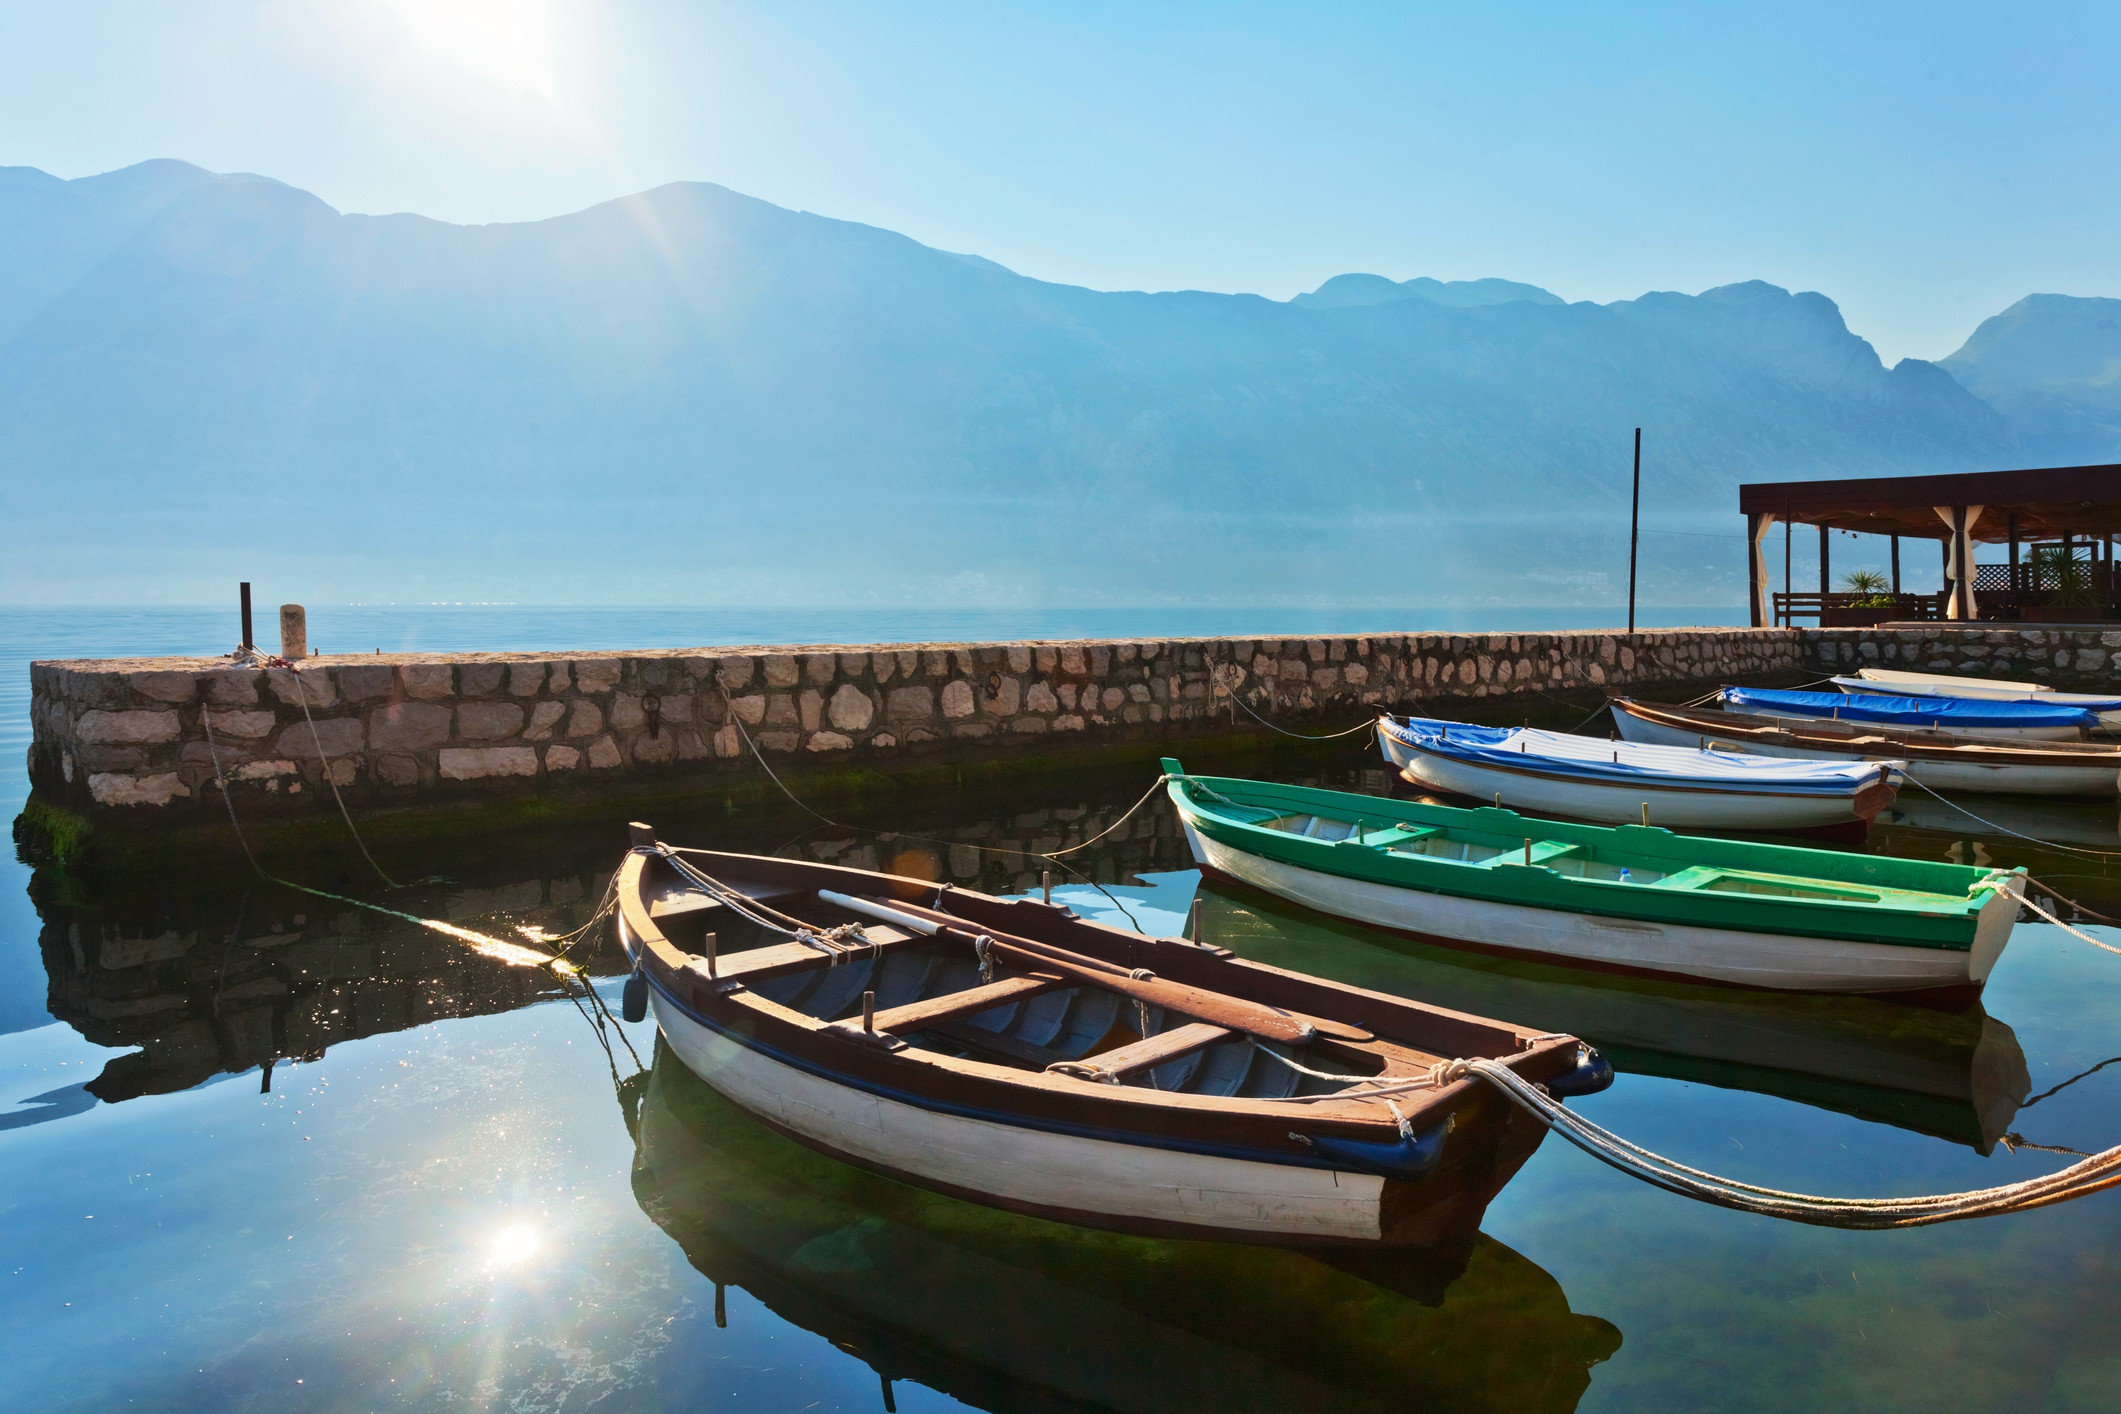 Romance Trip Ideas sky Boat water outdoor water transportation reflection mountain leisure Sea watercraft rowing boating tourism background vacation calm watercraft Resort landscape boats and boating equipment and supplies tied several